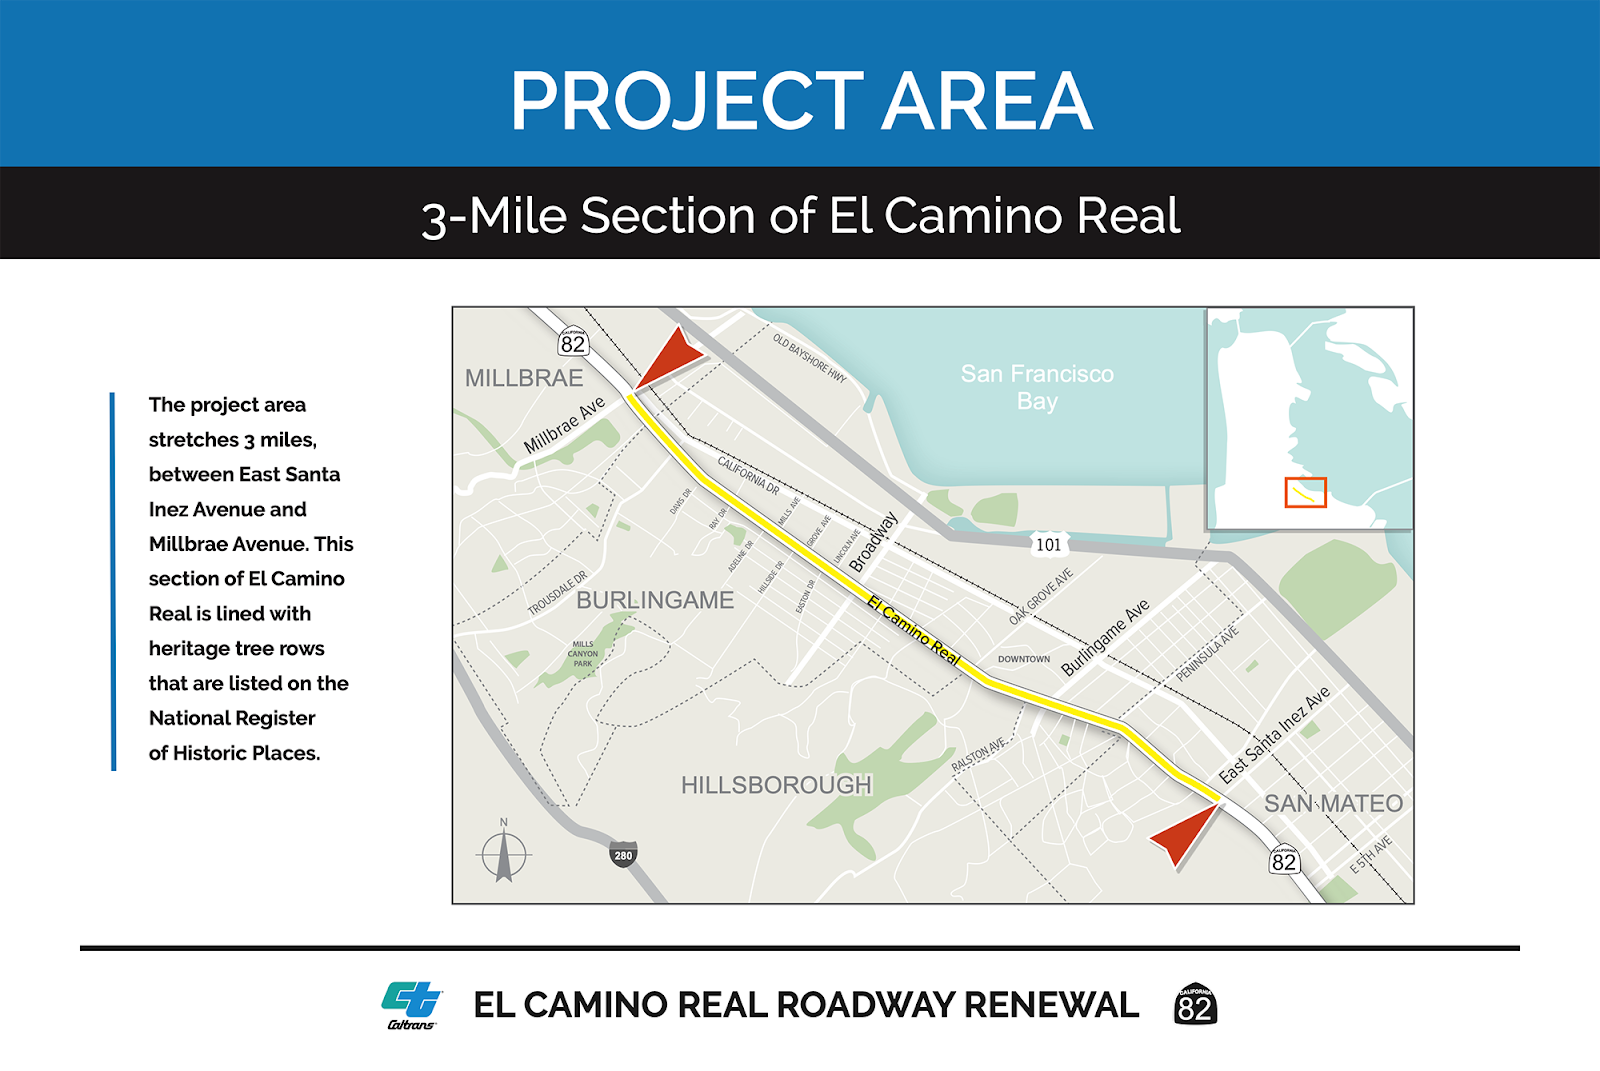 Project Area map, stretching on El Camino from East Santa Inez in San Mateo, through Burlingame, to Millbrae Avenue.